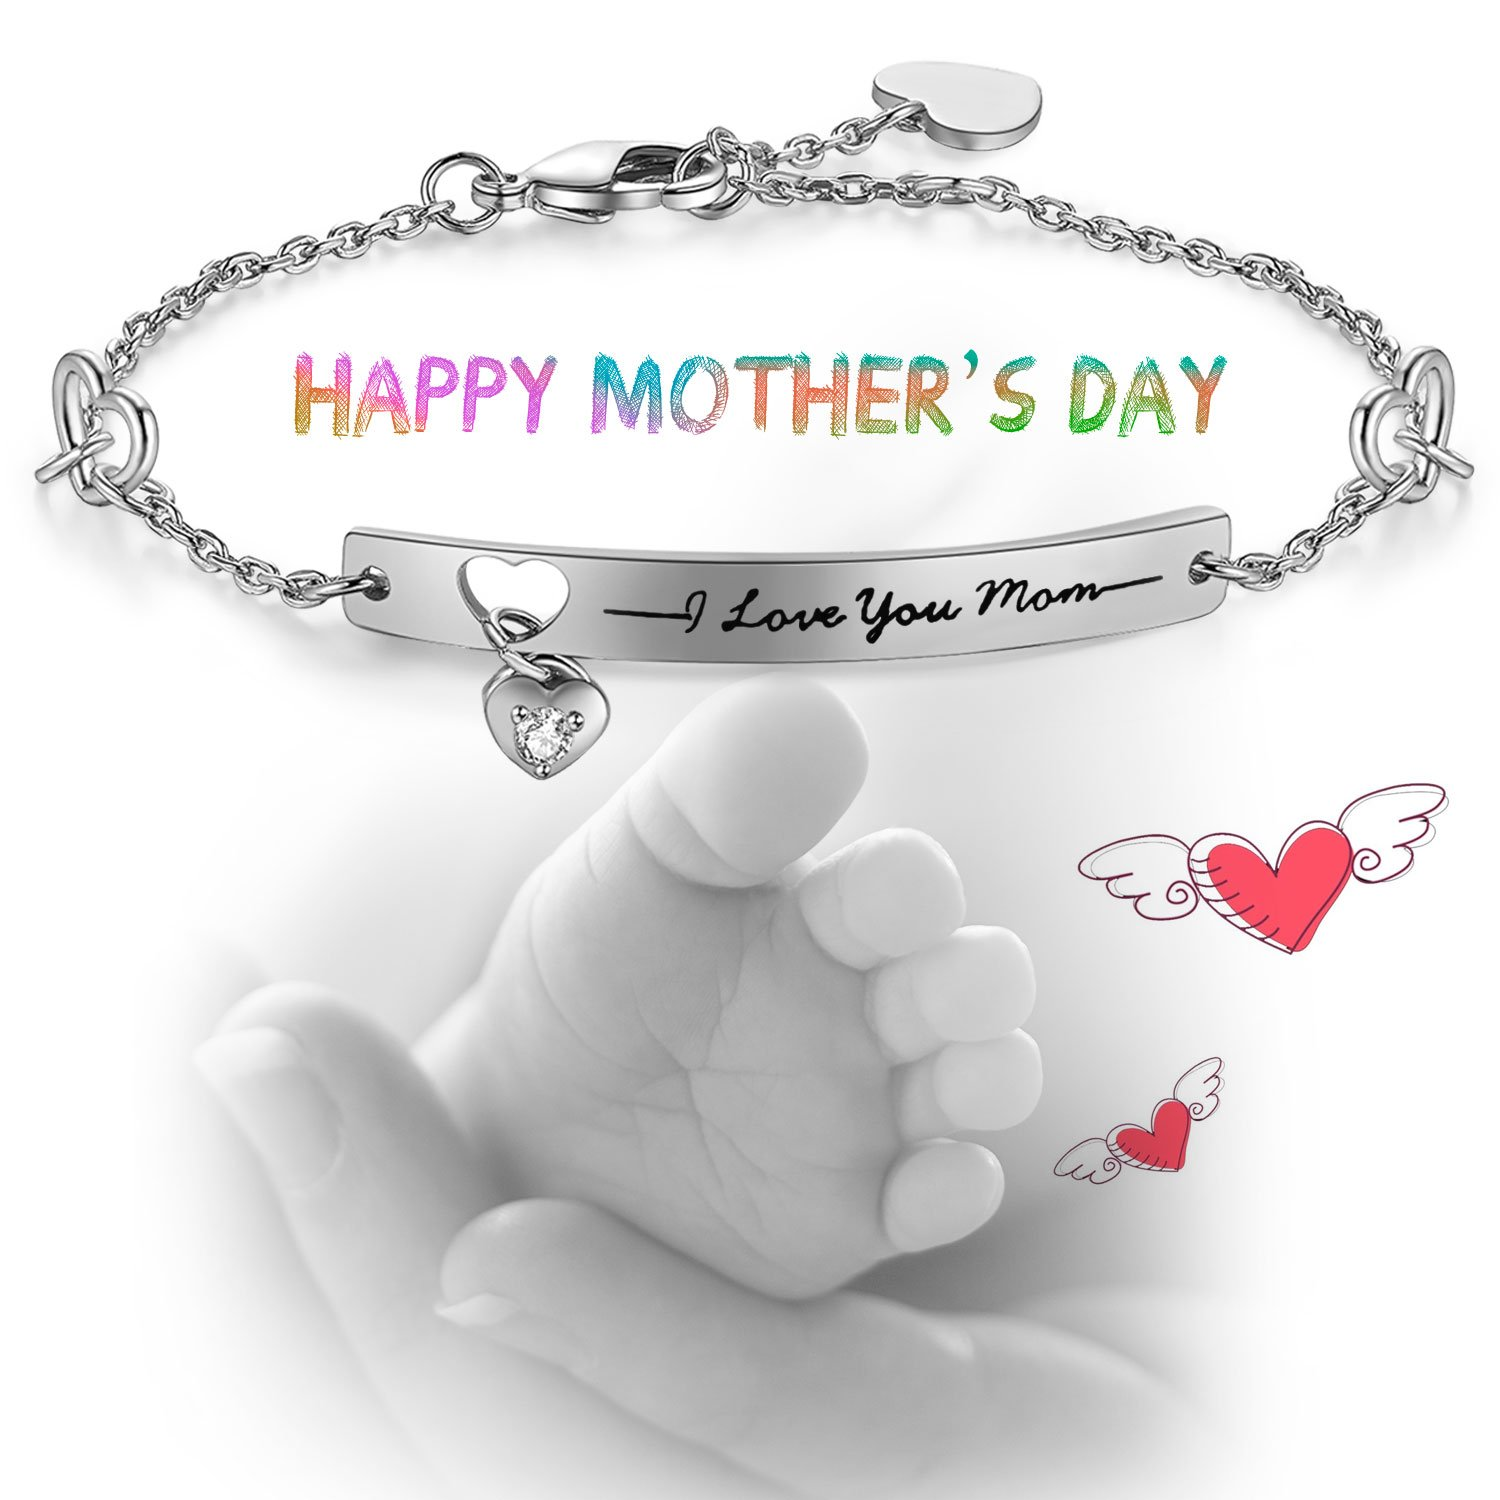 "NINAMAID ""I Love You Mom"" Engraved 925 Sterling Silver Bracelet Sparkling Cubic Zirconia Mother's Gift by NINAMAID (Image #3)"